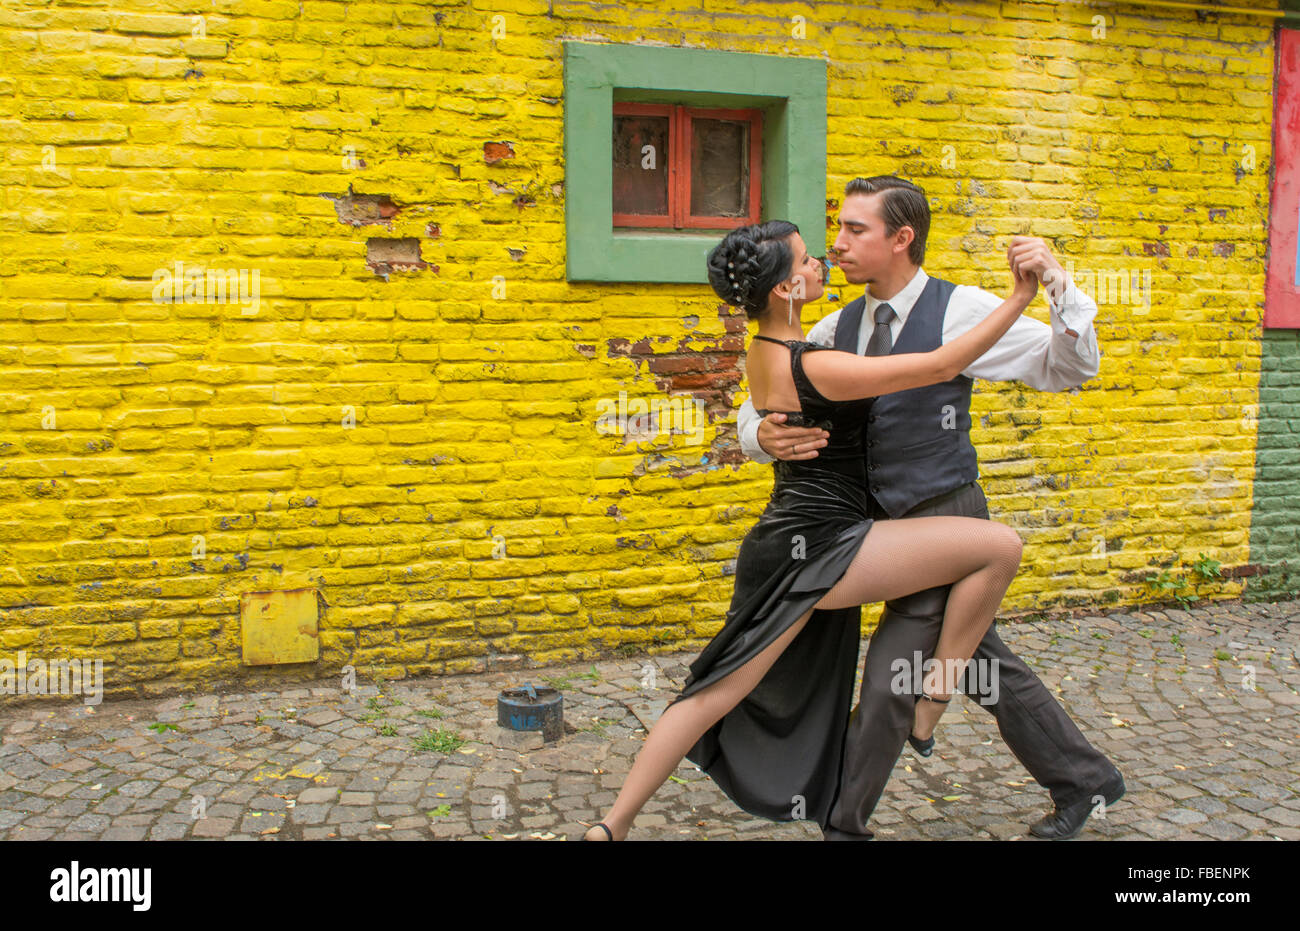 Buenos Aires Argentina La Boca tango dance with couple on street with colors worn walls with passion model released Stock Photo